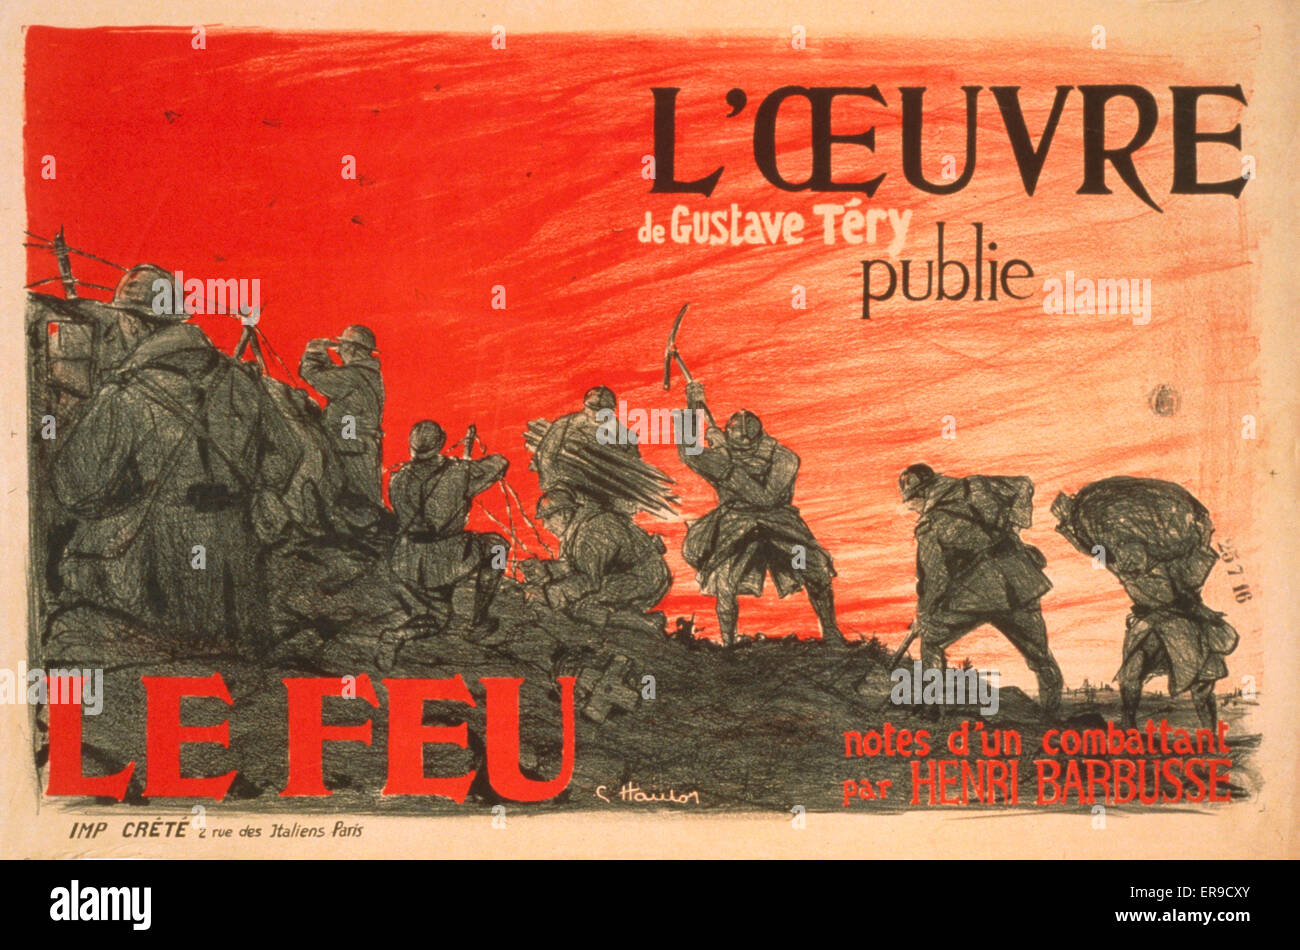 L'Oeuvre de Gustave Tery publie 'Le Feu' notes d'un combattant par Henri Barbusse. Soldiers at the - Stock Image